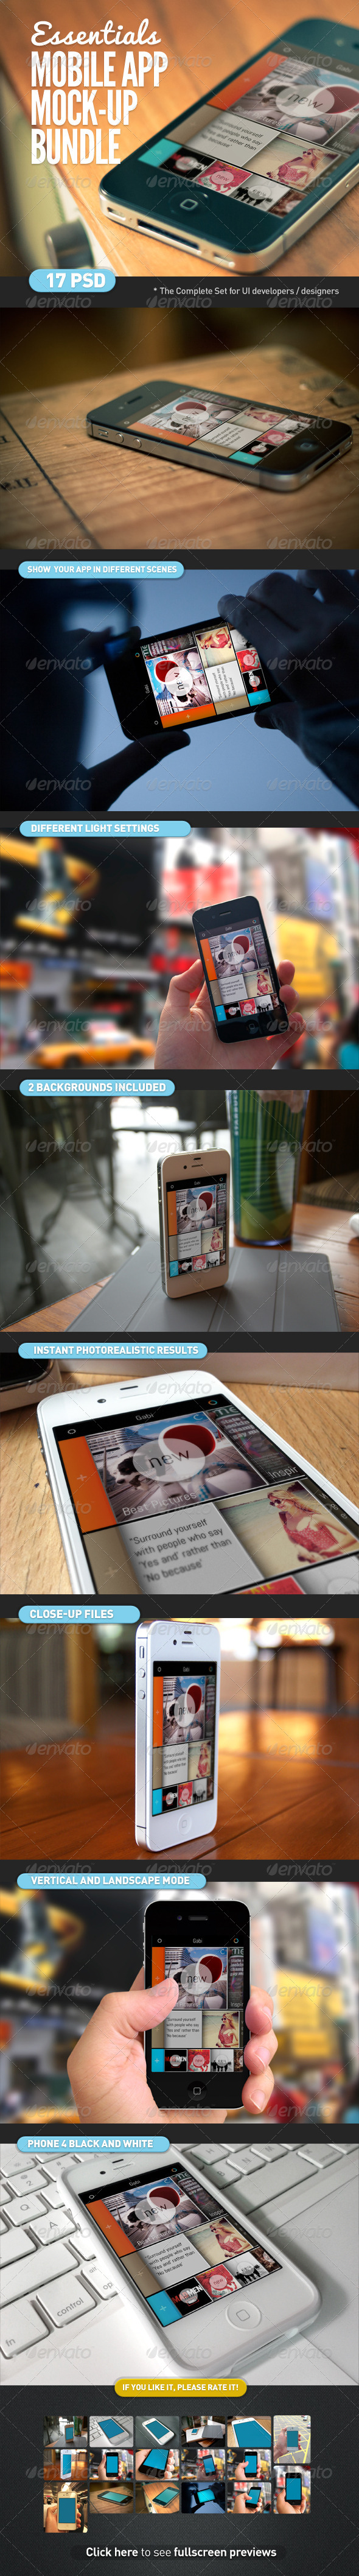 http://1.s3.envato.com/files/51988779/mobile-app-screen-mockup-bundle-preview.jpg